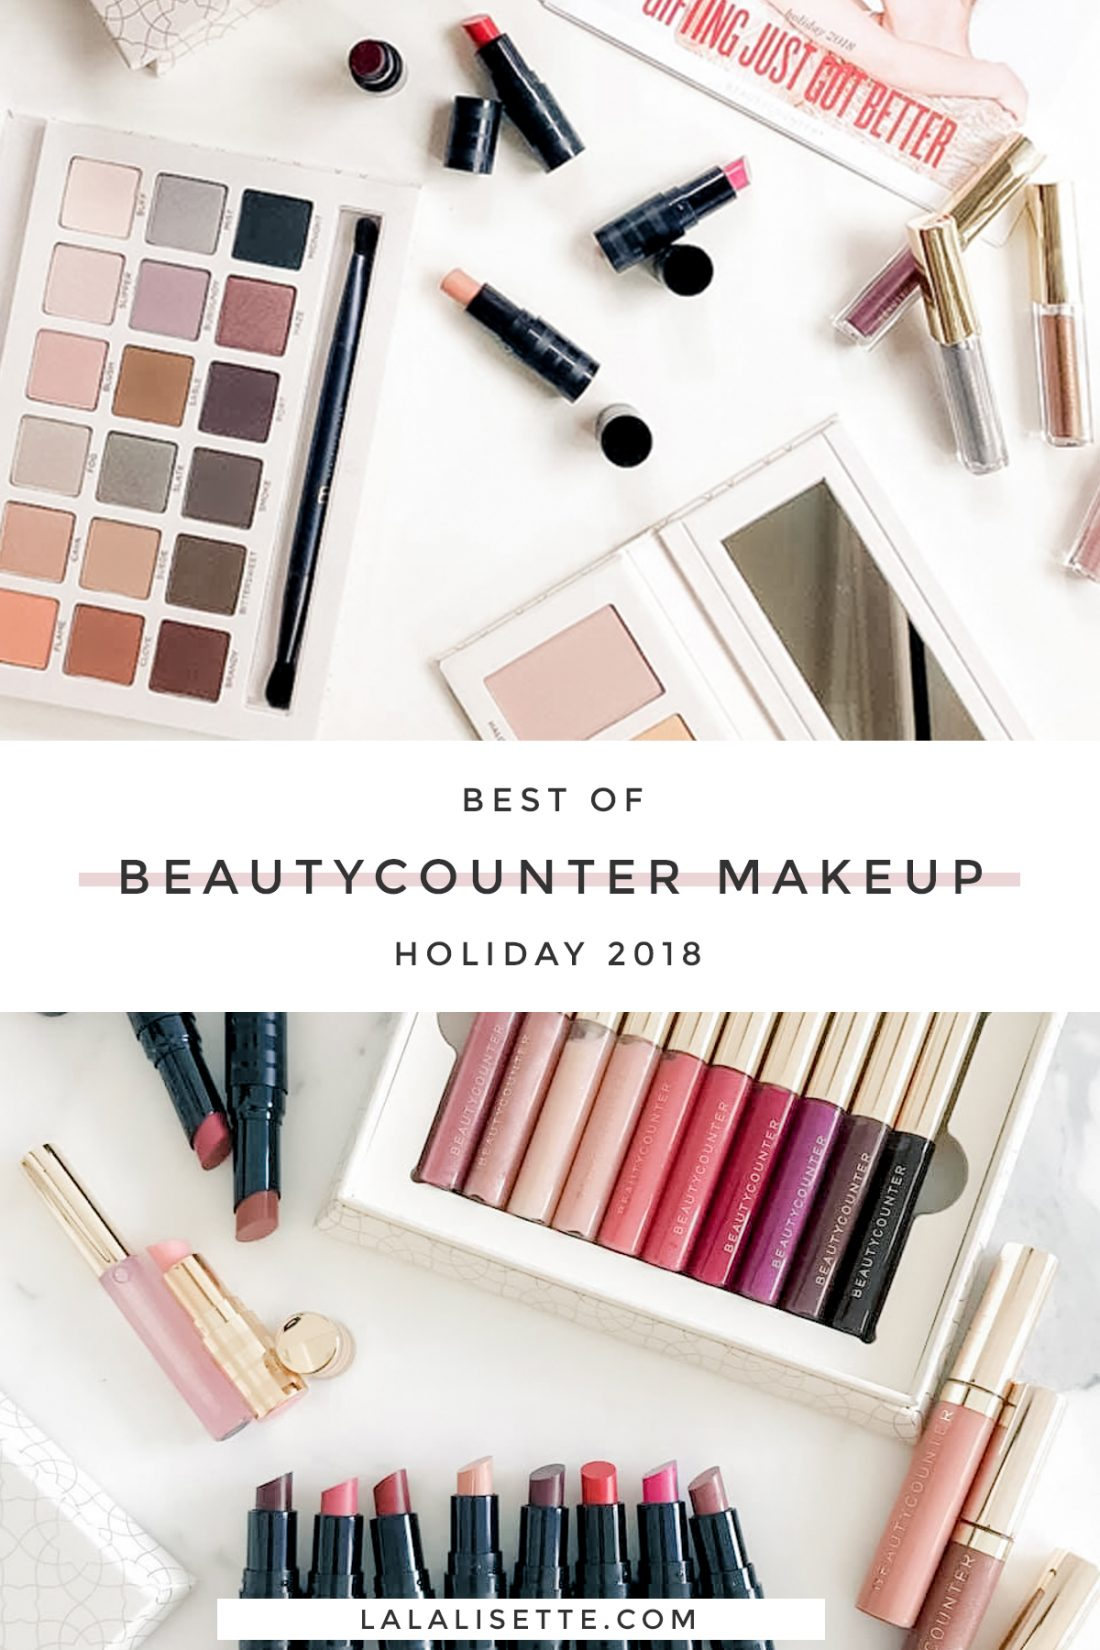 flatlays of Bautycounter makeup with text: Best of Beautycounter Makeup Holiday 2018